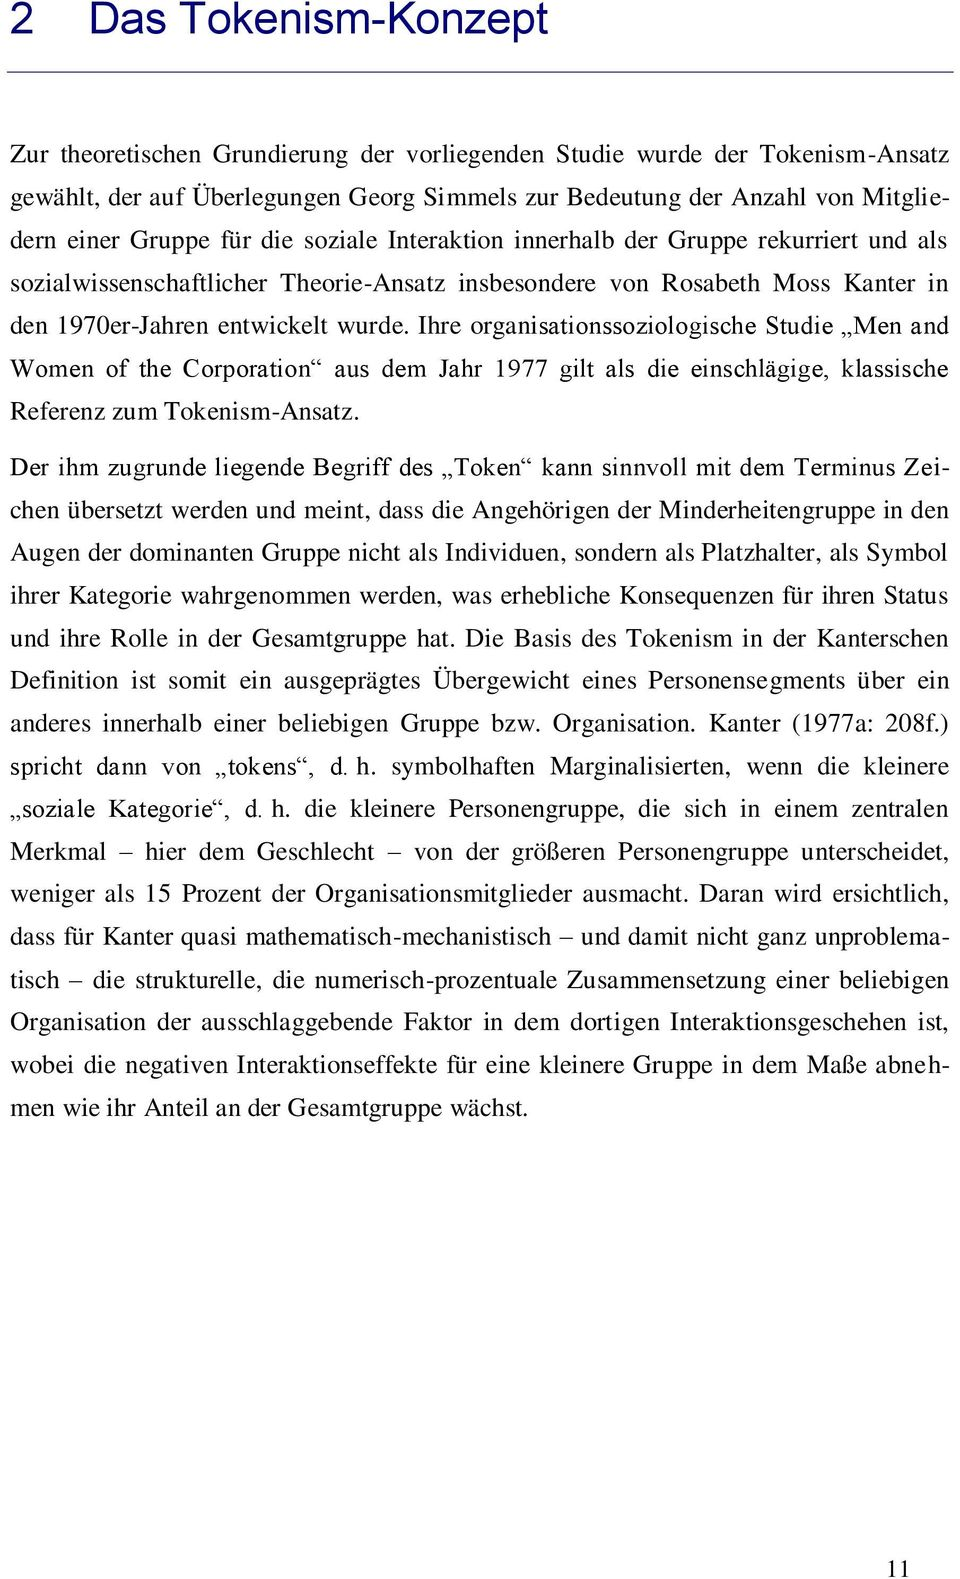 Ihre organisationssoziologische Studie Men and Women of the Corporation aus dem Jahr 1977 gilt als die einschlägige, klassische Referenz zum Tokenism-Ansatz.